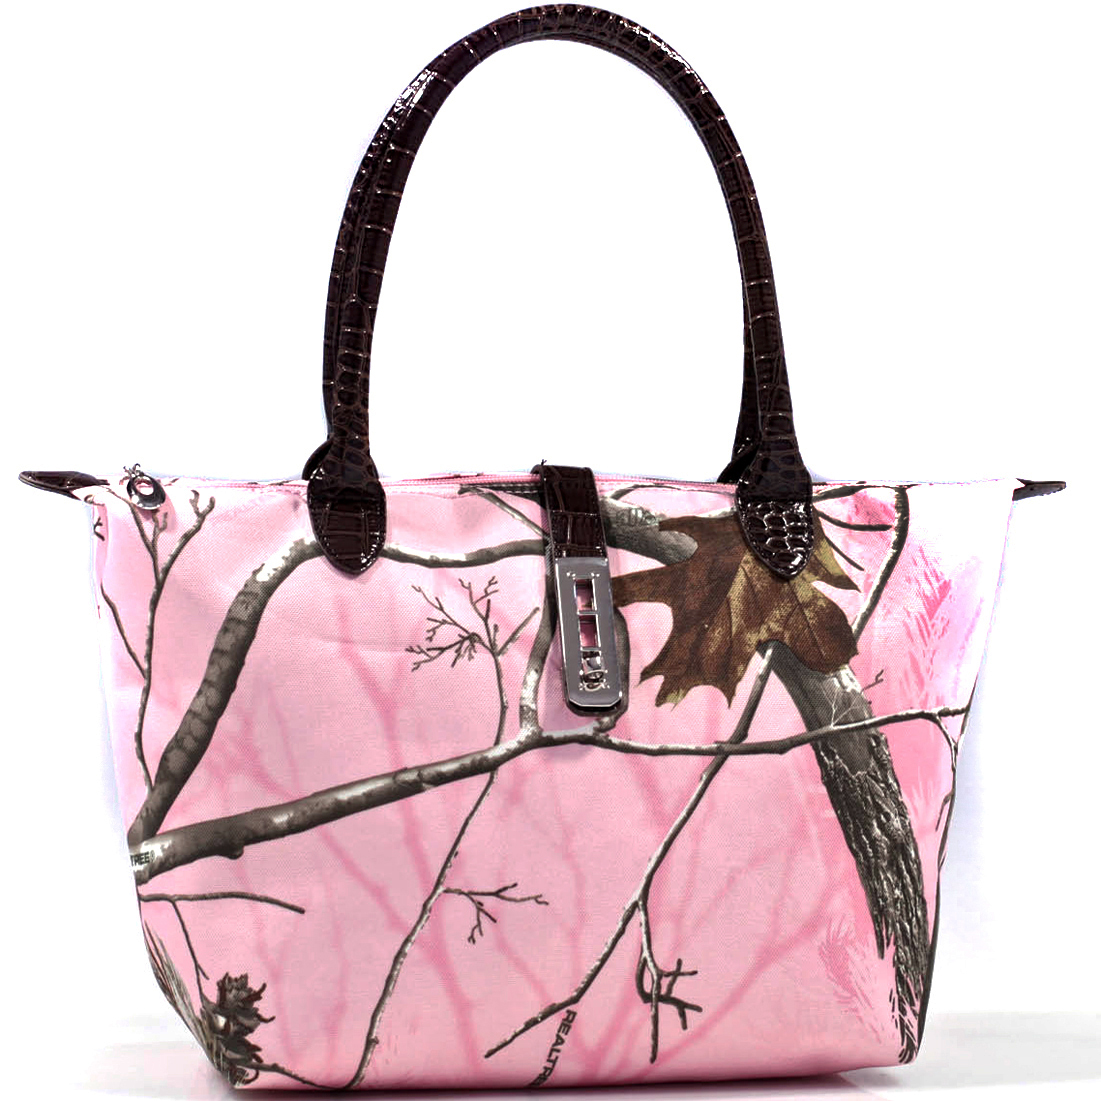 Realtree ® Camouflage Tote Bag with Twist Lock Accent - Pink/camouflage